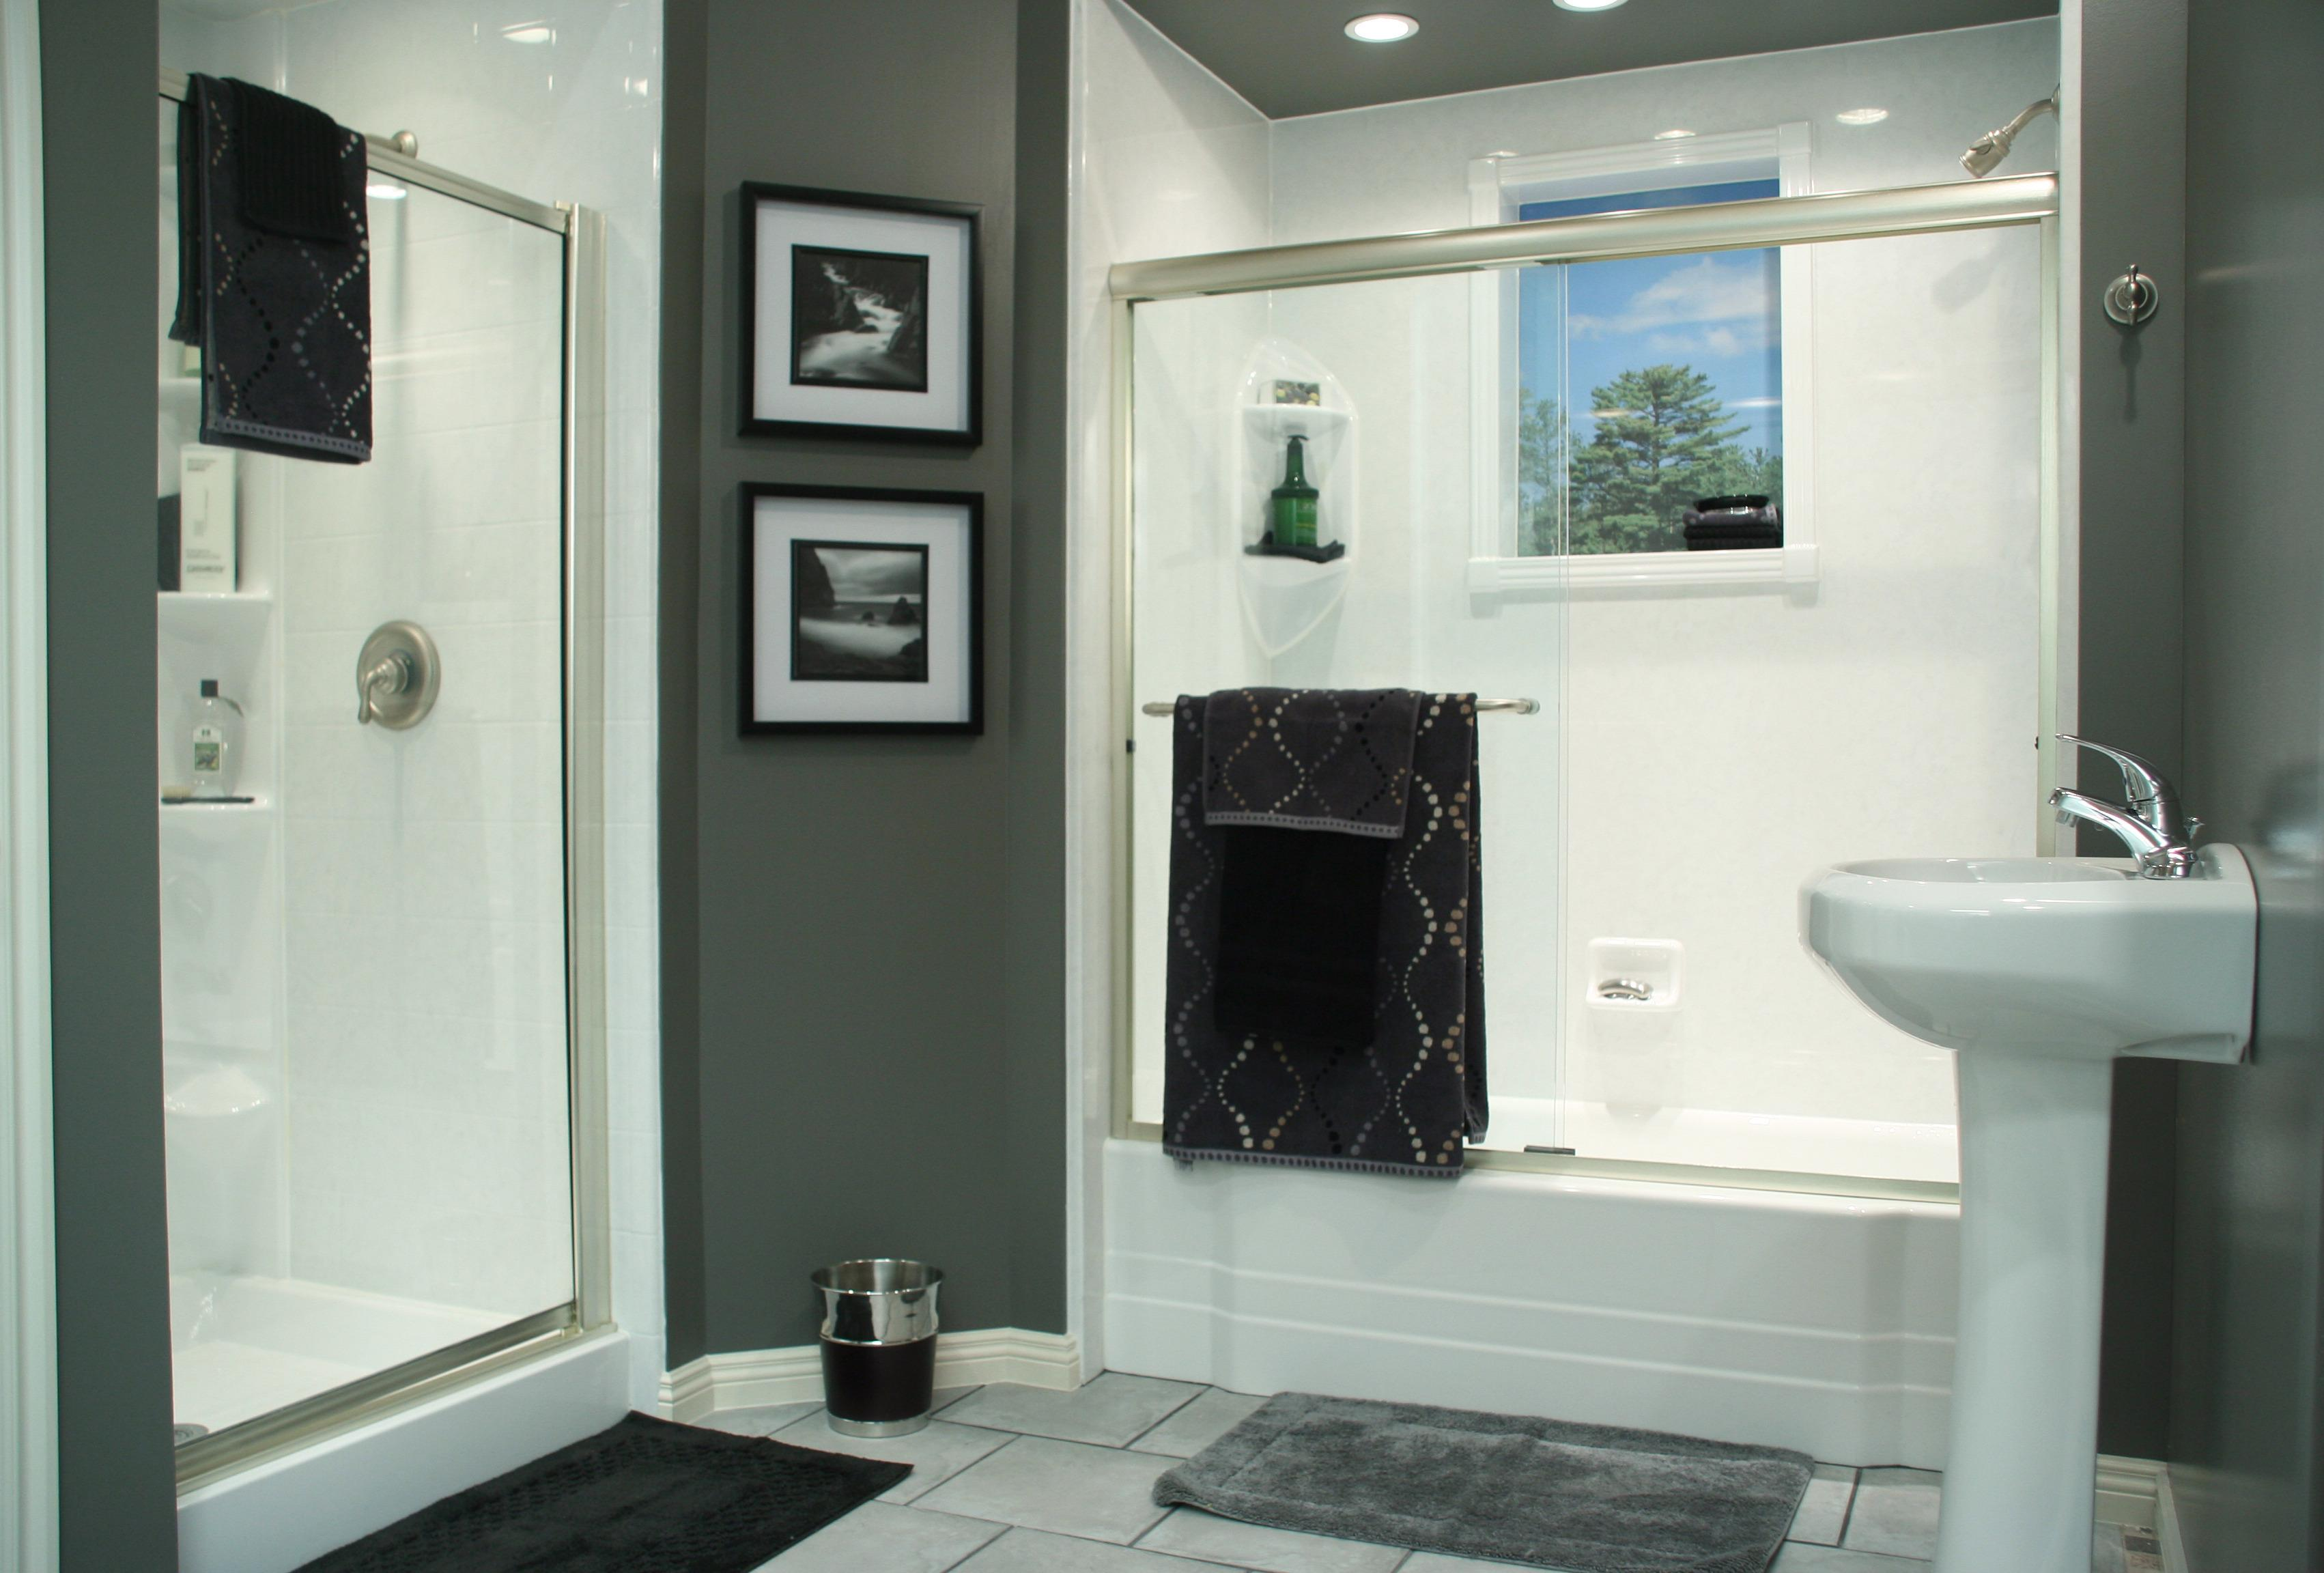 Bathroom remodeling dayton oh bathroom makeovers for Bath remodel dayton ohio